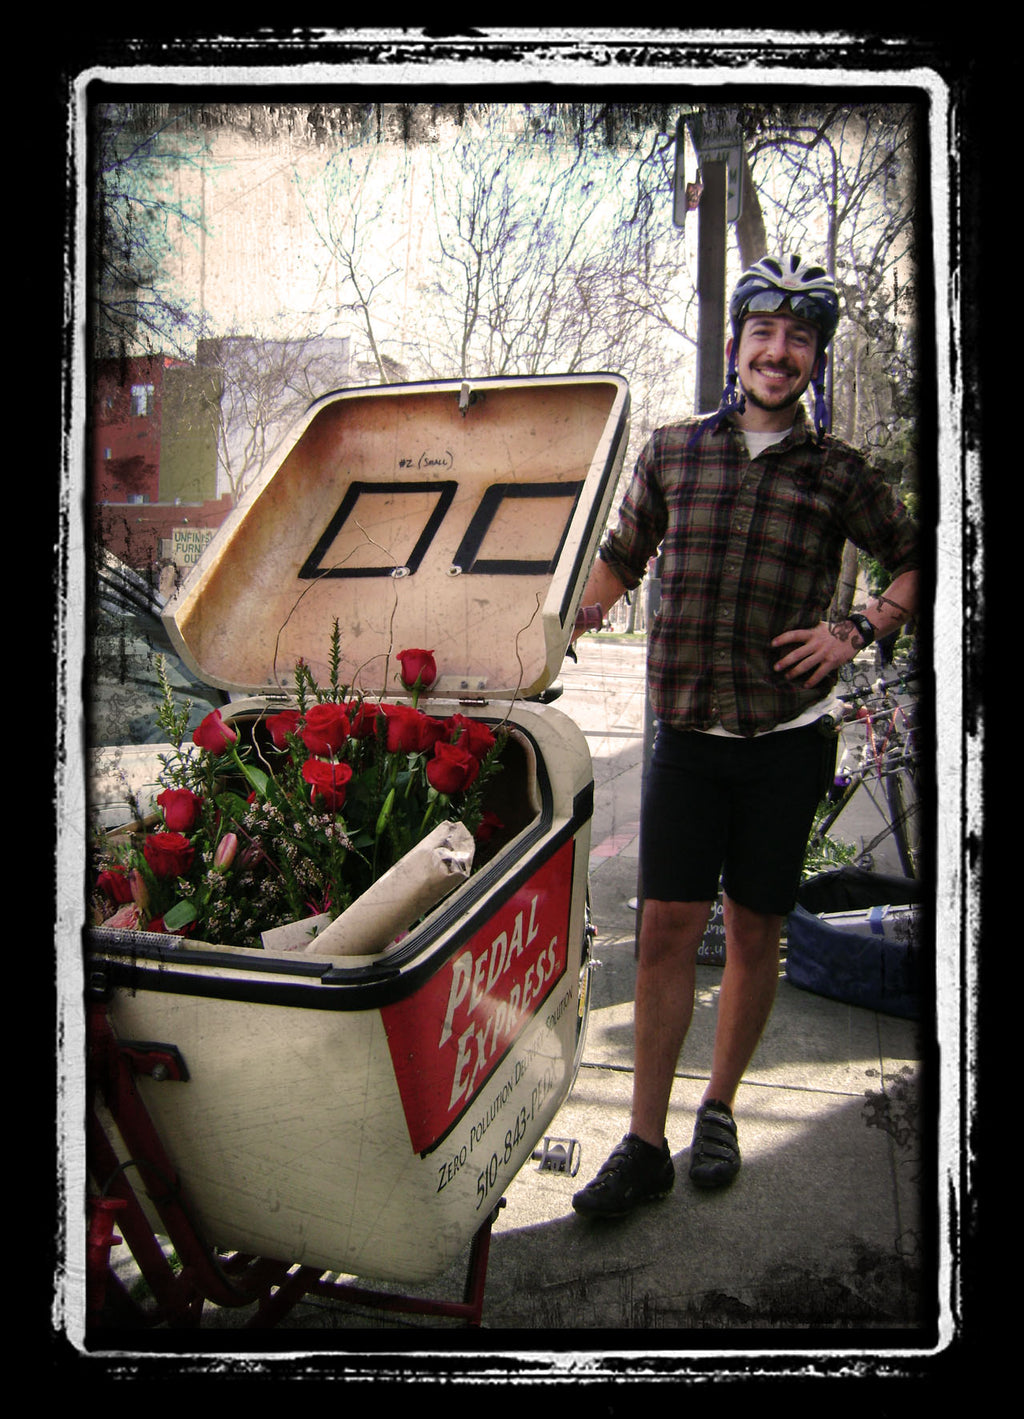 Bike Courier ready to deliver flowers for Gorgeous and Green customers